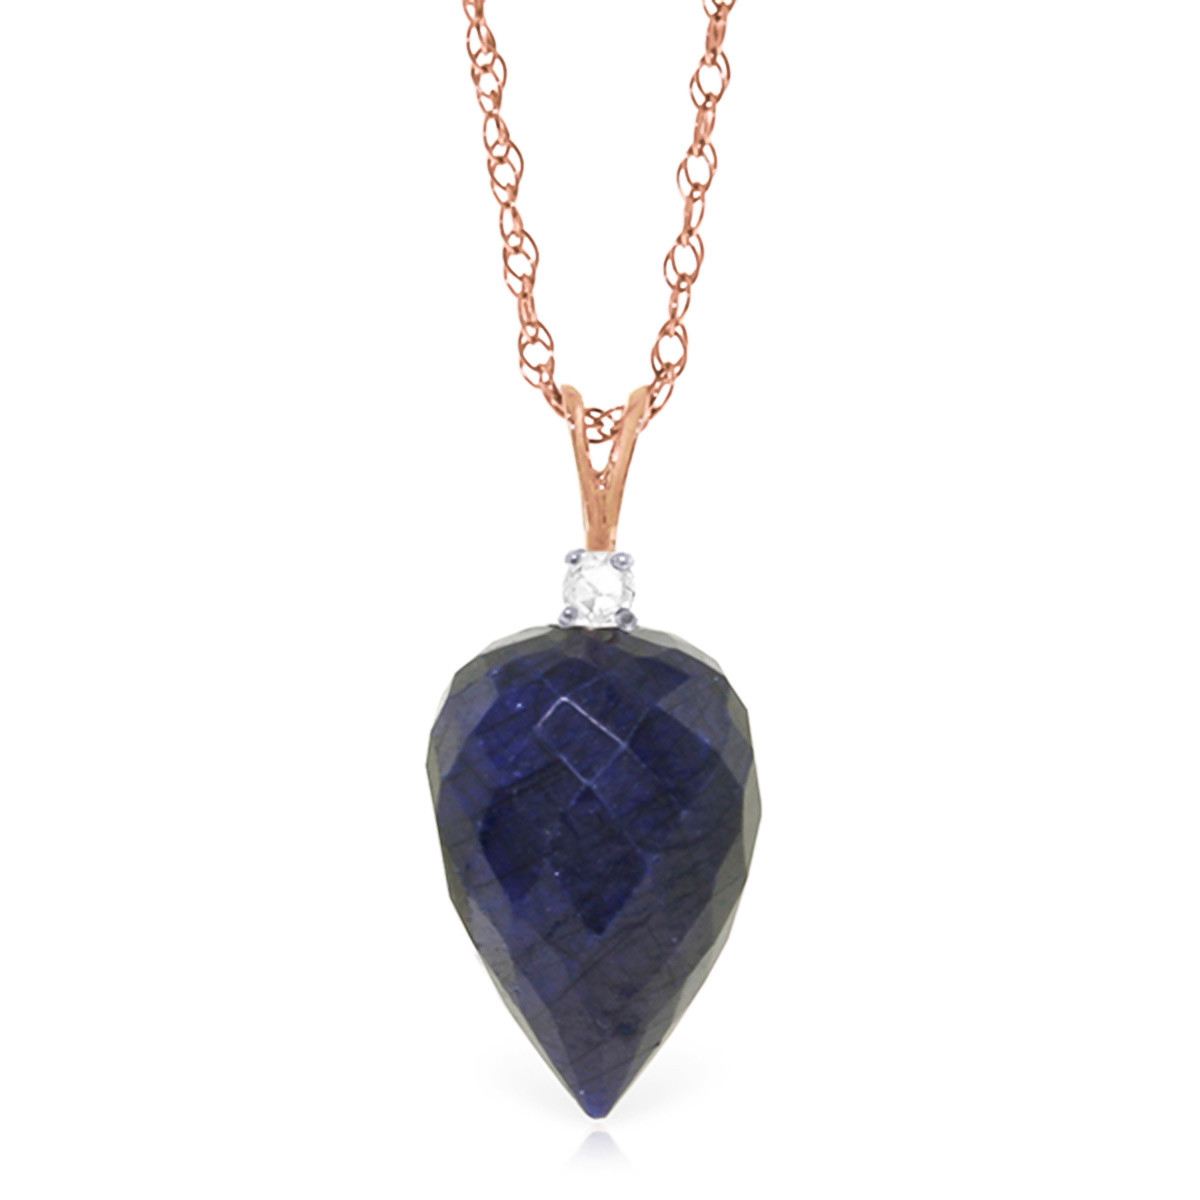 Pointed Briolette Cut Sapphire Pendant Necklace 12.95 ctw in 9ct Rose Gold